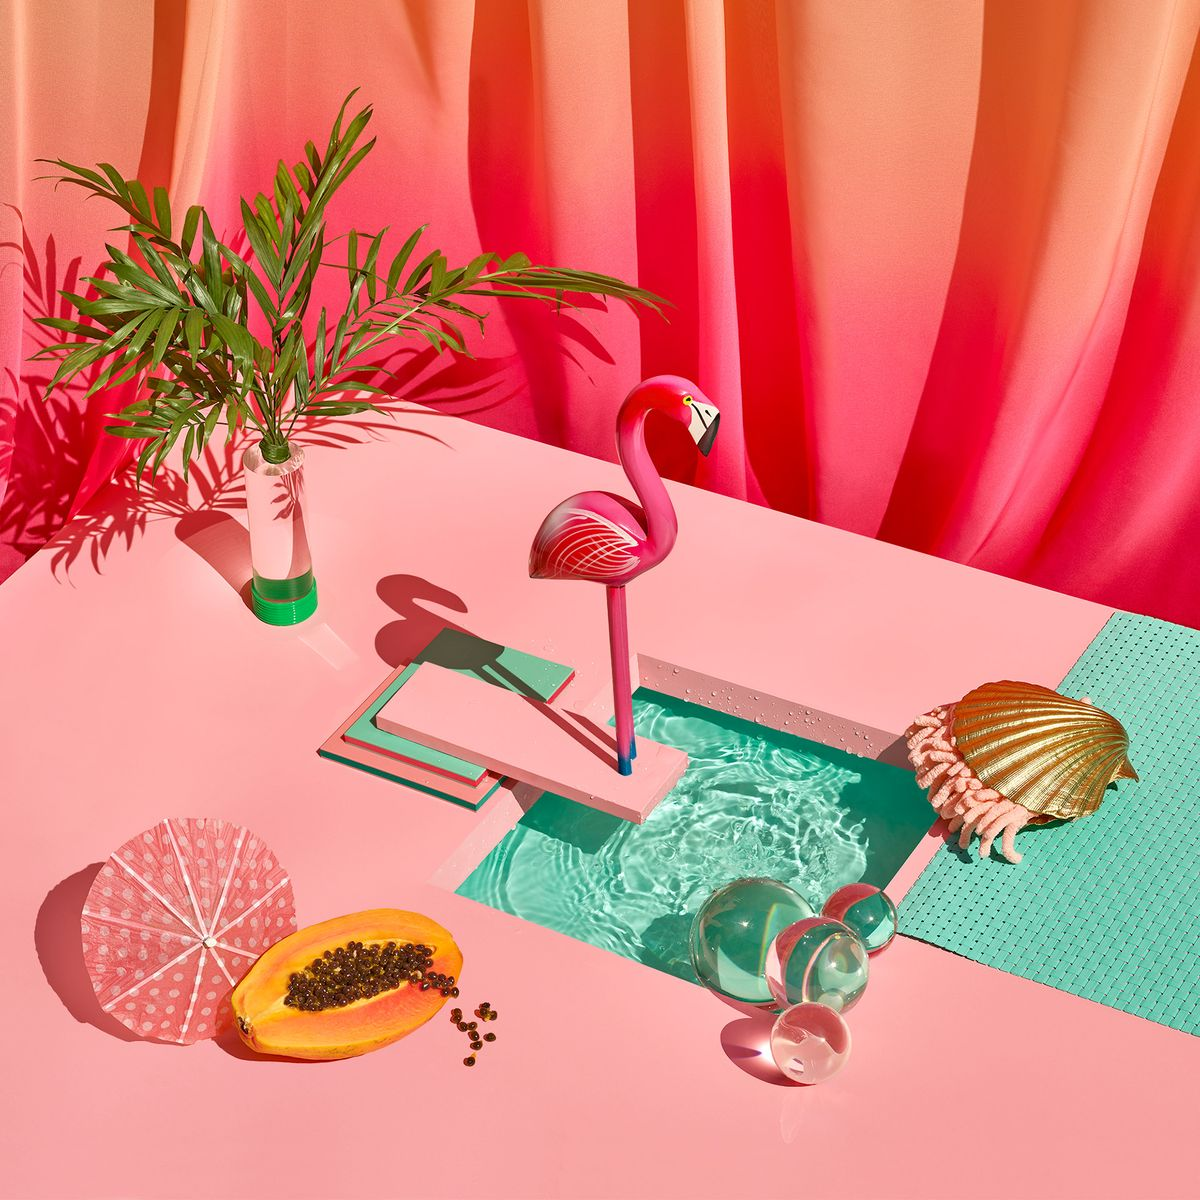 Tropical fruits, marine life, and sunshine – still life photographs inspired by the sunny coasts of Mexico by Paloma Rincon.